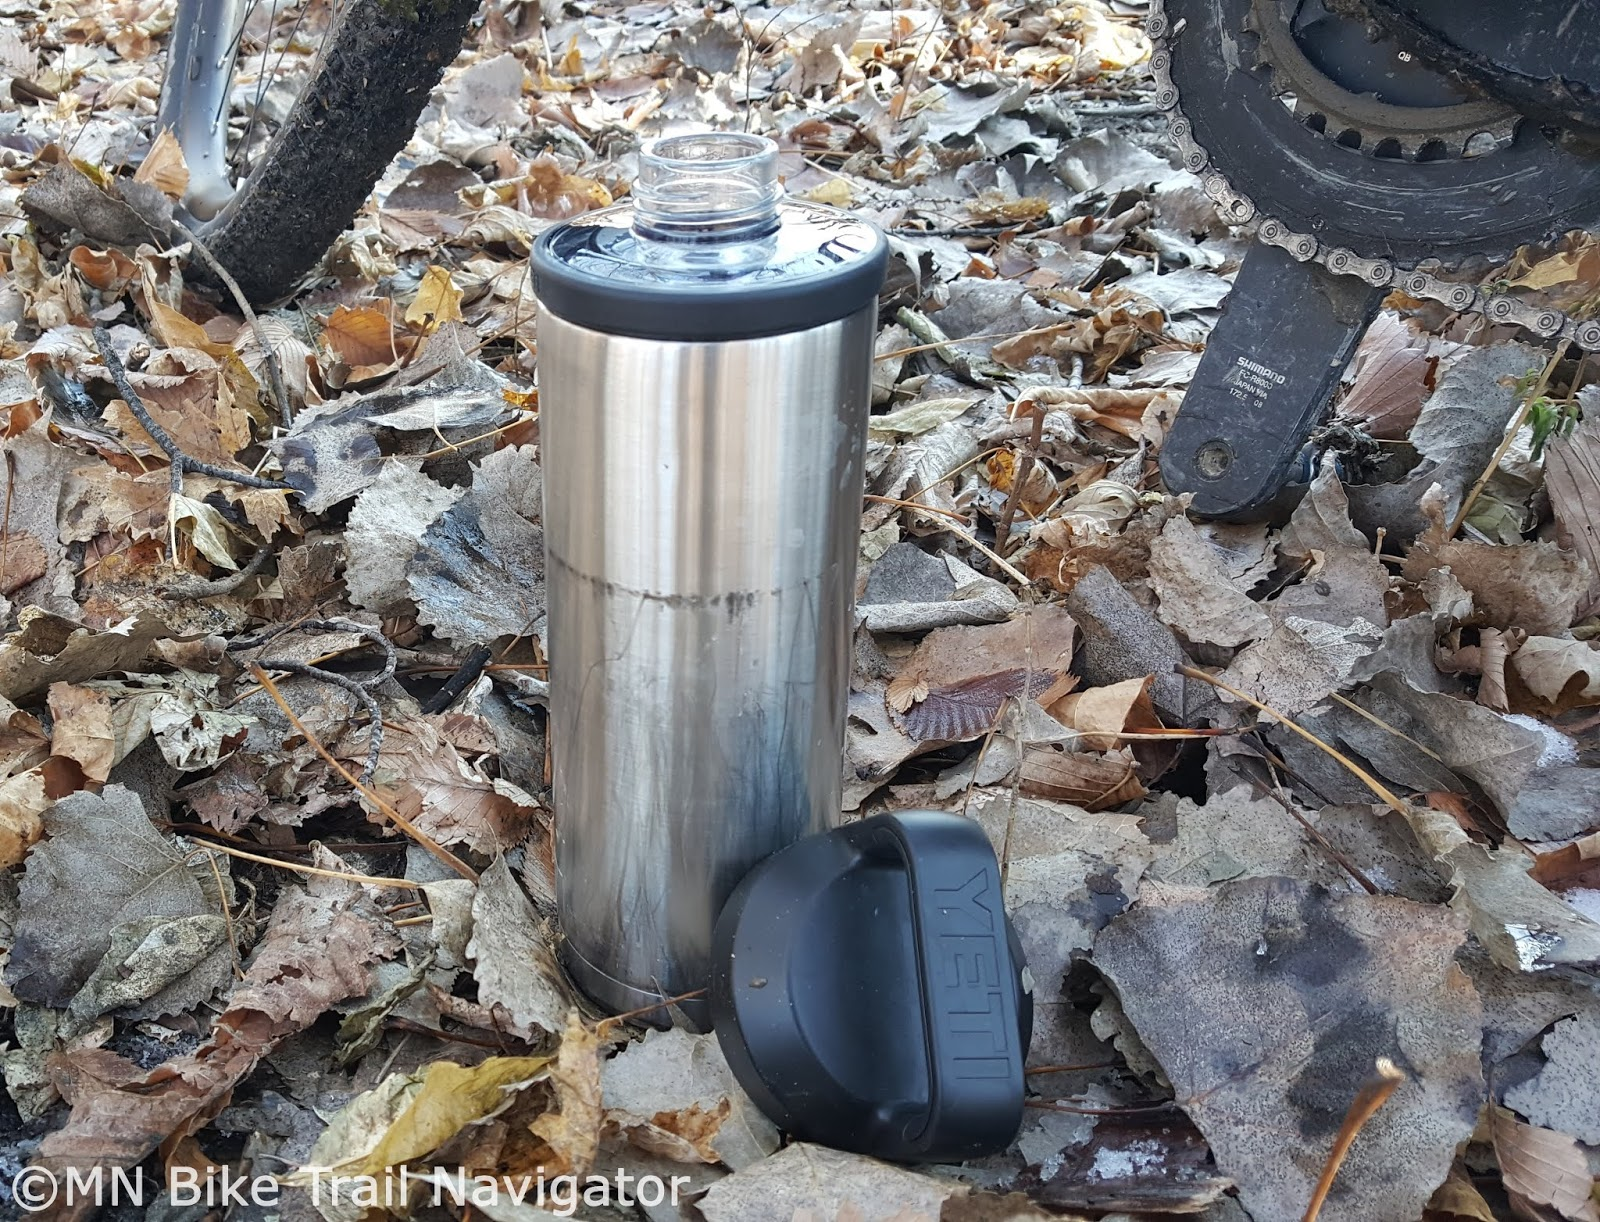 MN Bike Trail Navigator: Field Tested Cycling Gifts-Part 2